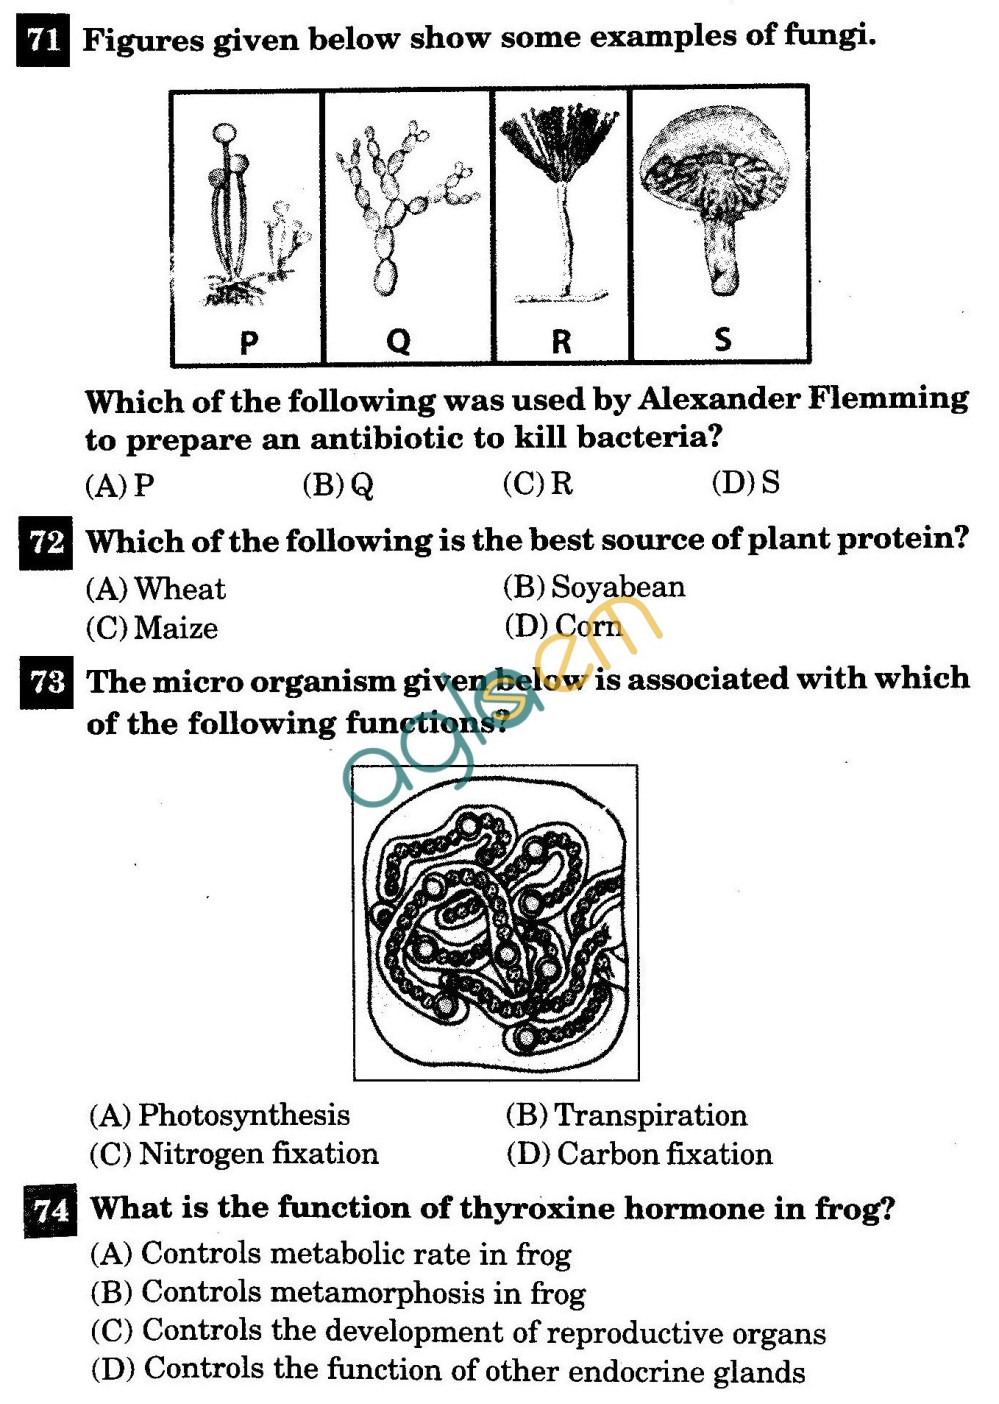 medium resolution of NSTSE 2011 Solved Question Paper for Class VIII - Biology   AglaSem Schools